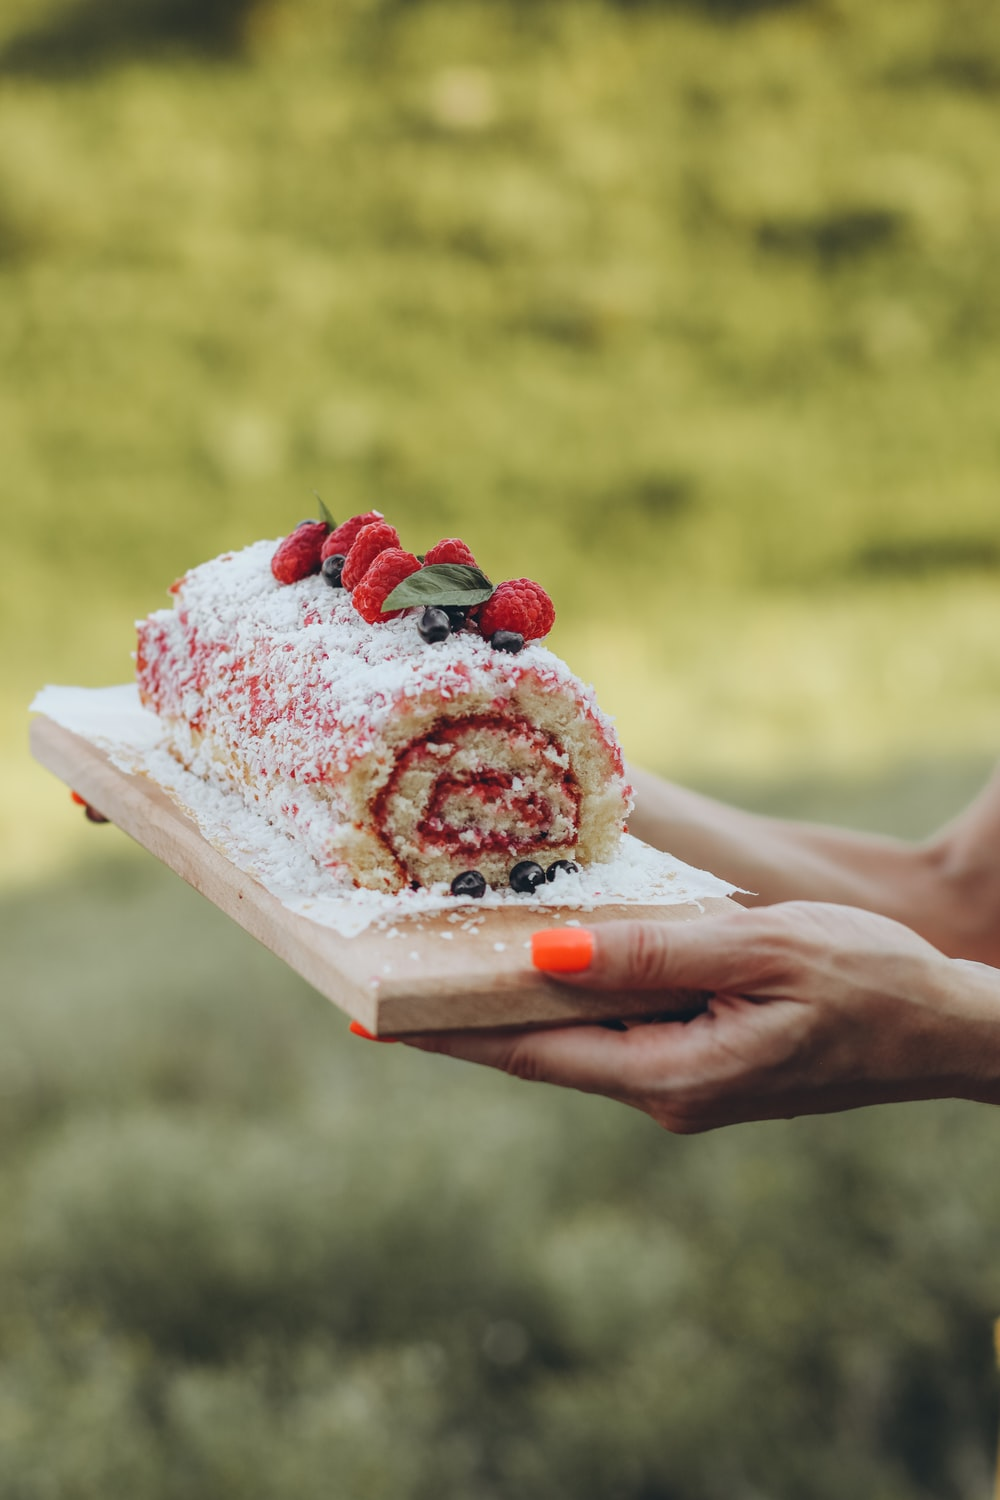 person holding white and red cake